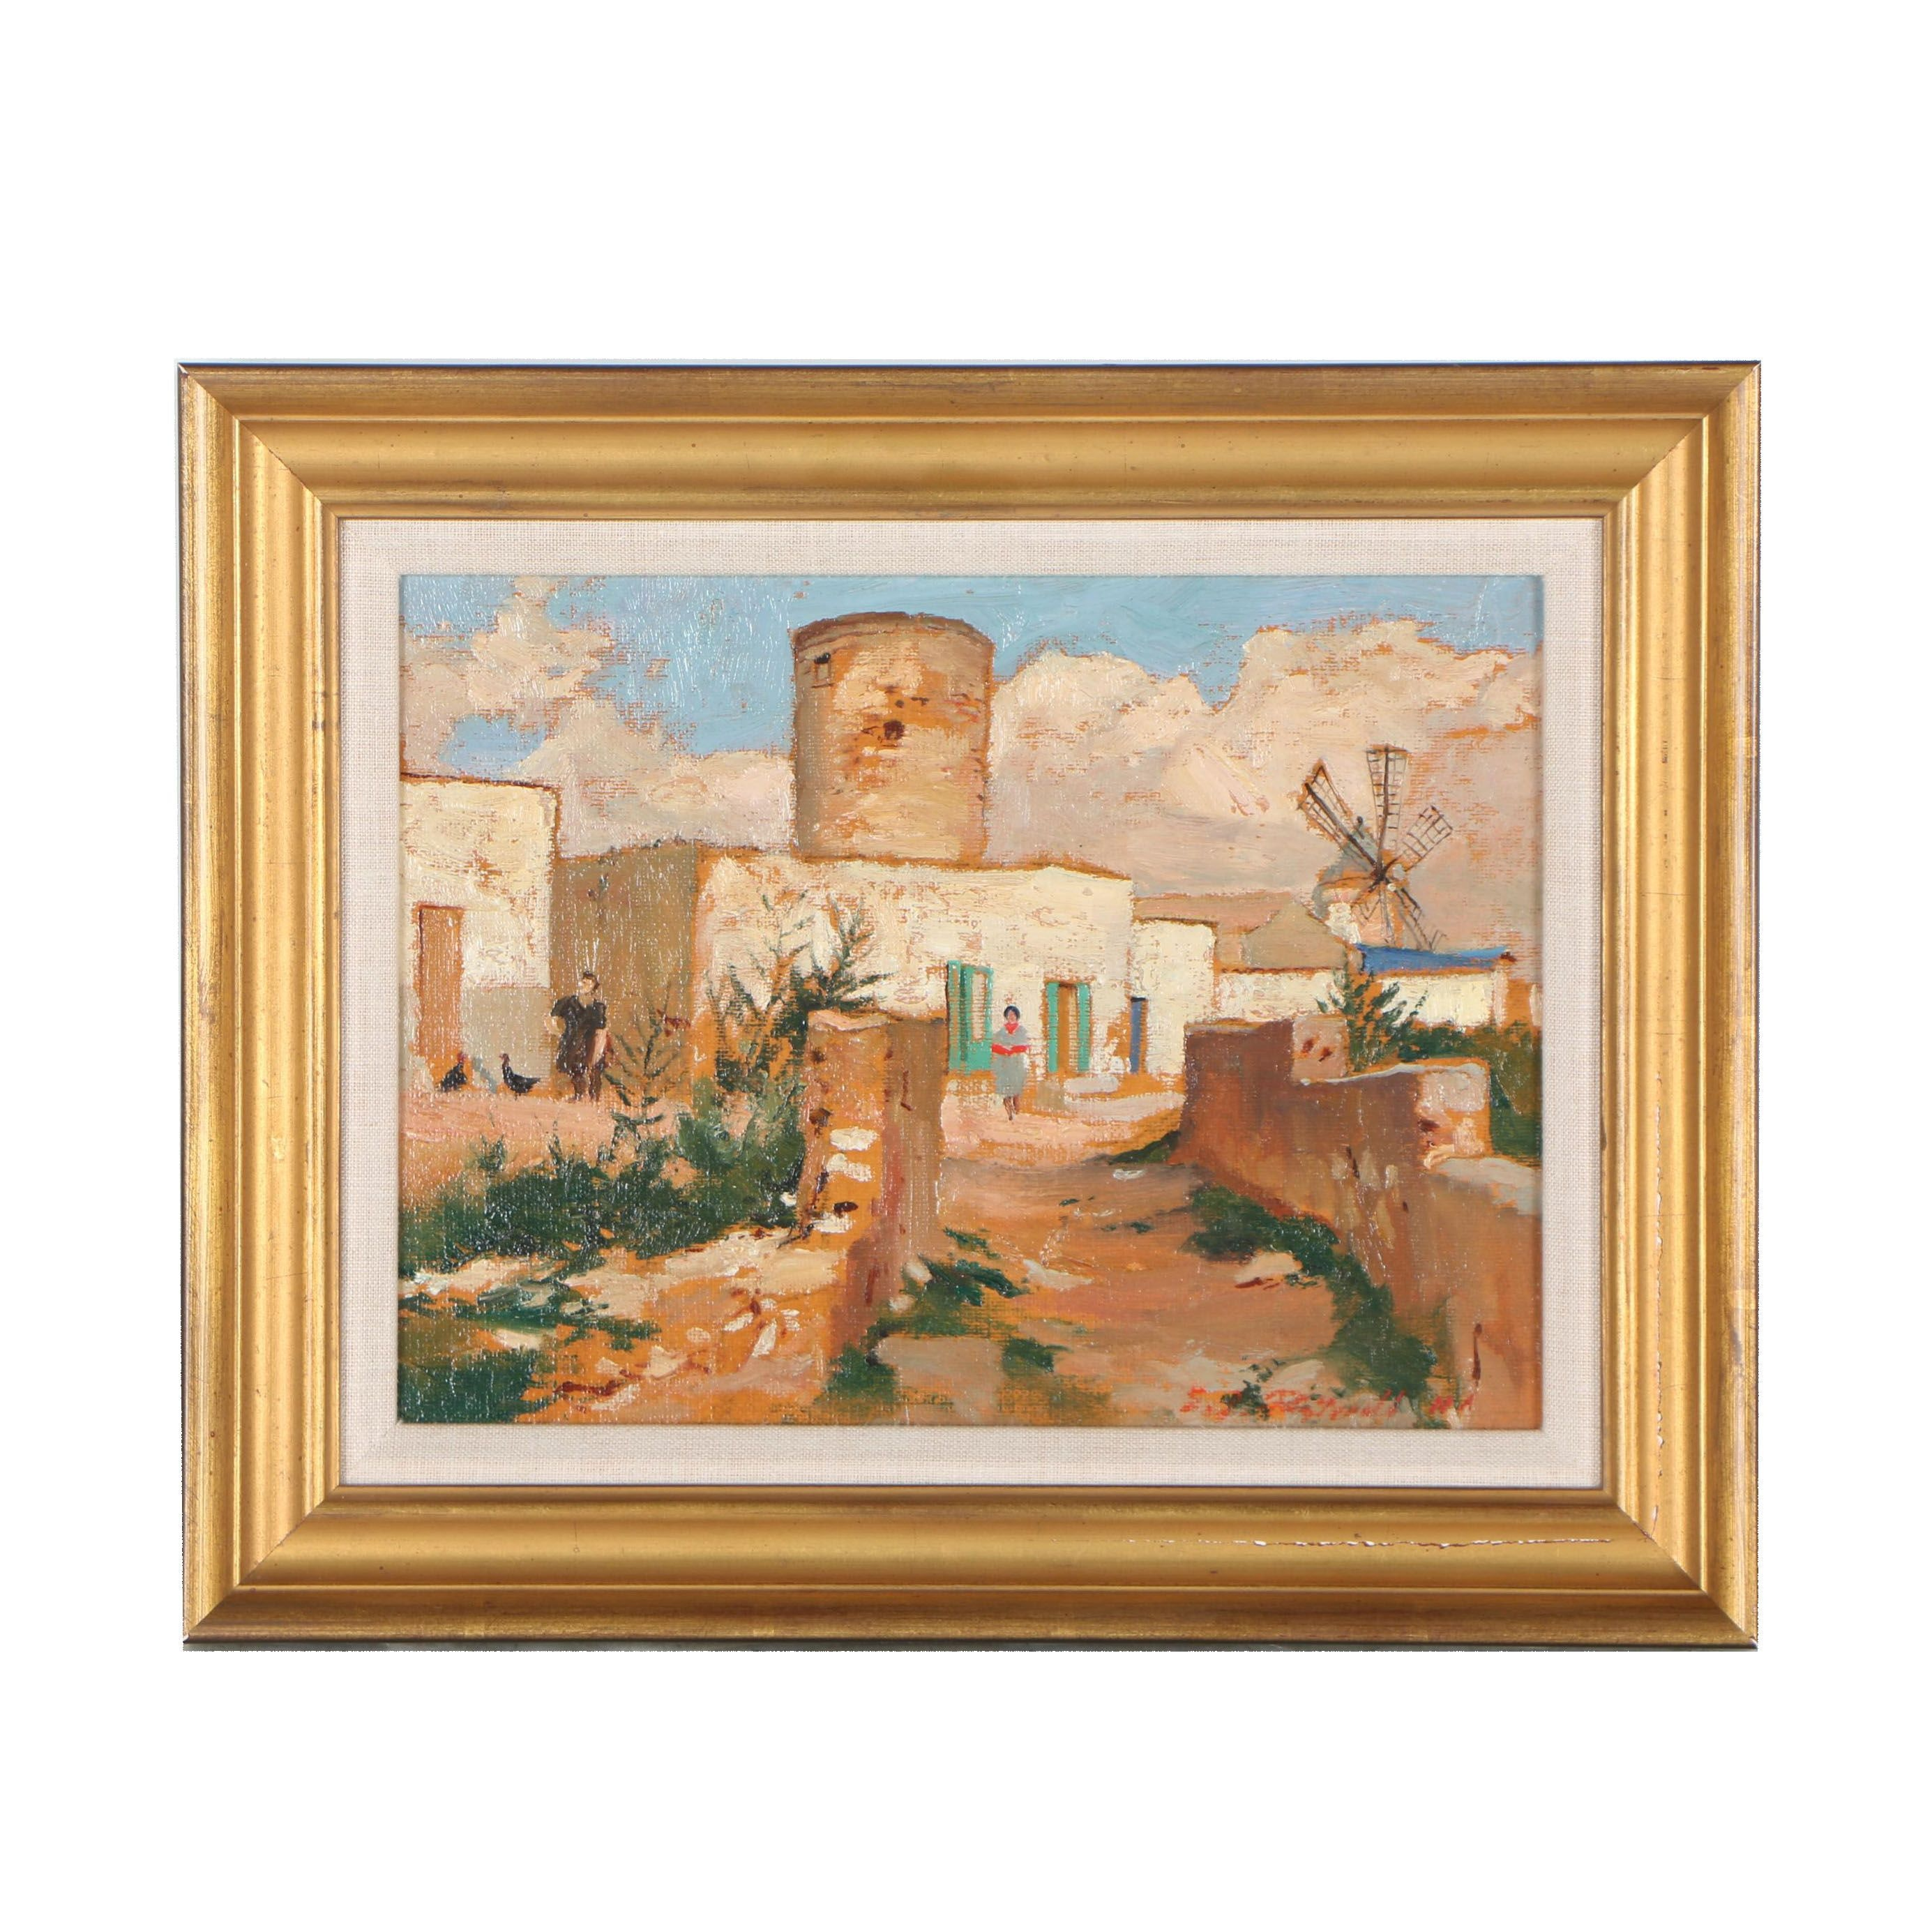 Edmond J. Fitzgerald Oil Painting of Townscape